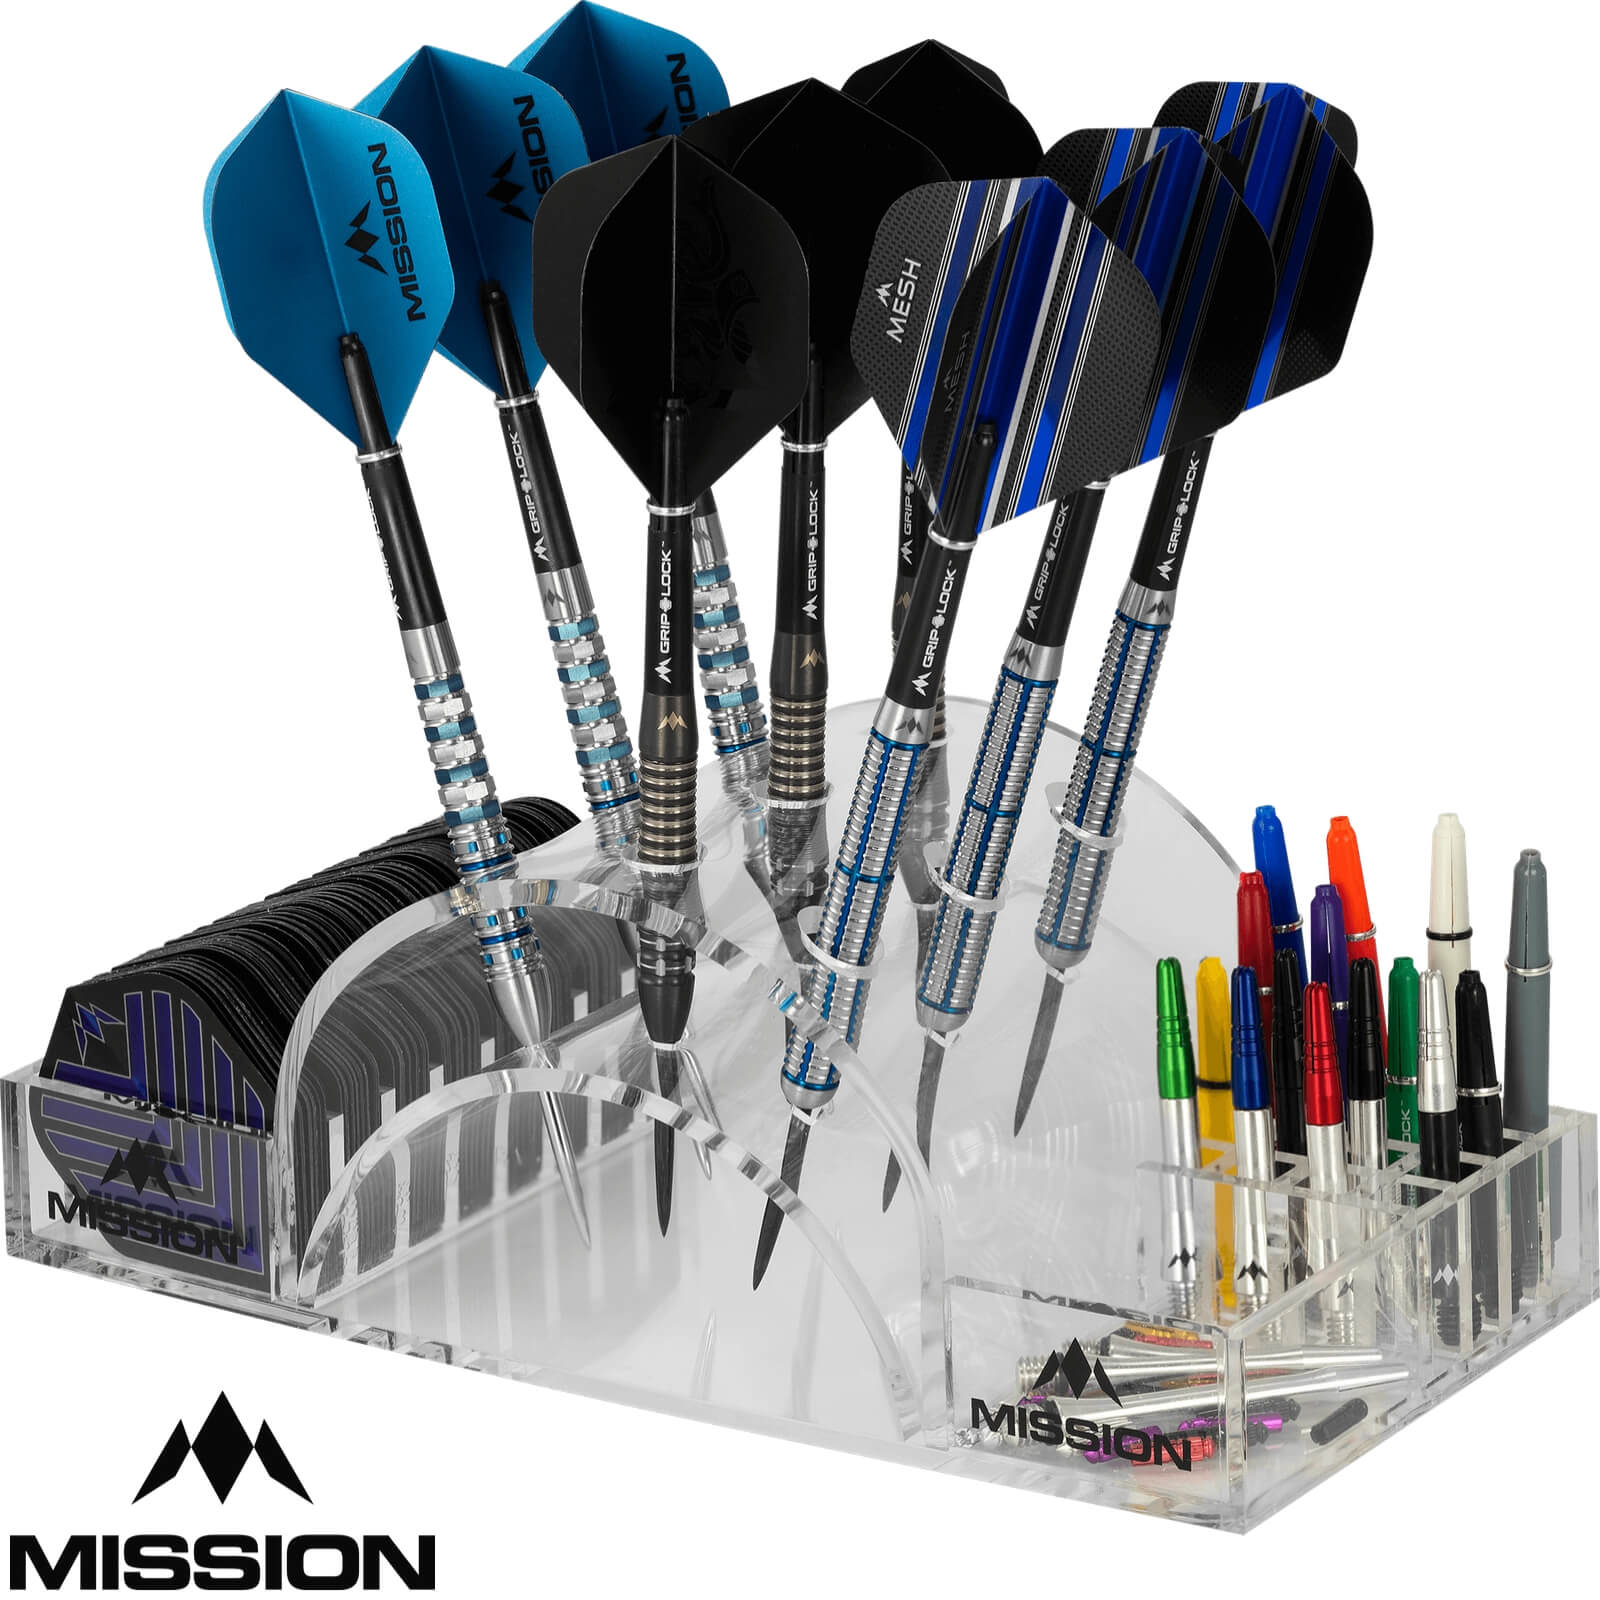 Display Stands - Mission - Station 9 Darts & Accessories Docking Station